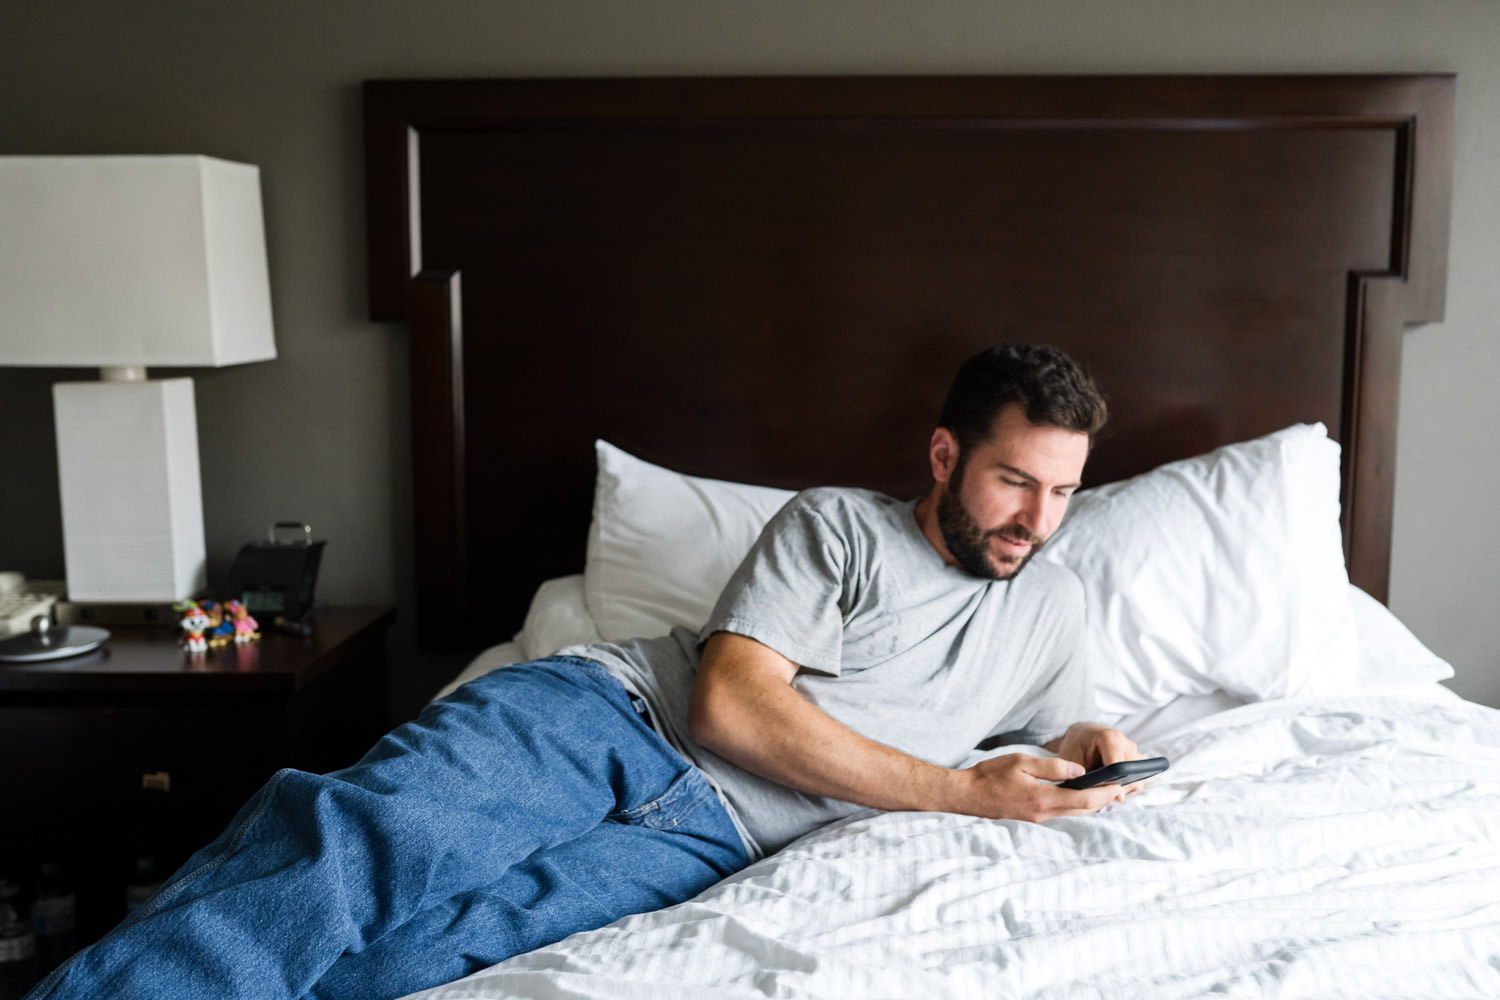 A man checks his cell phone in a hotel room.